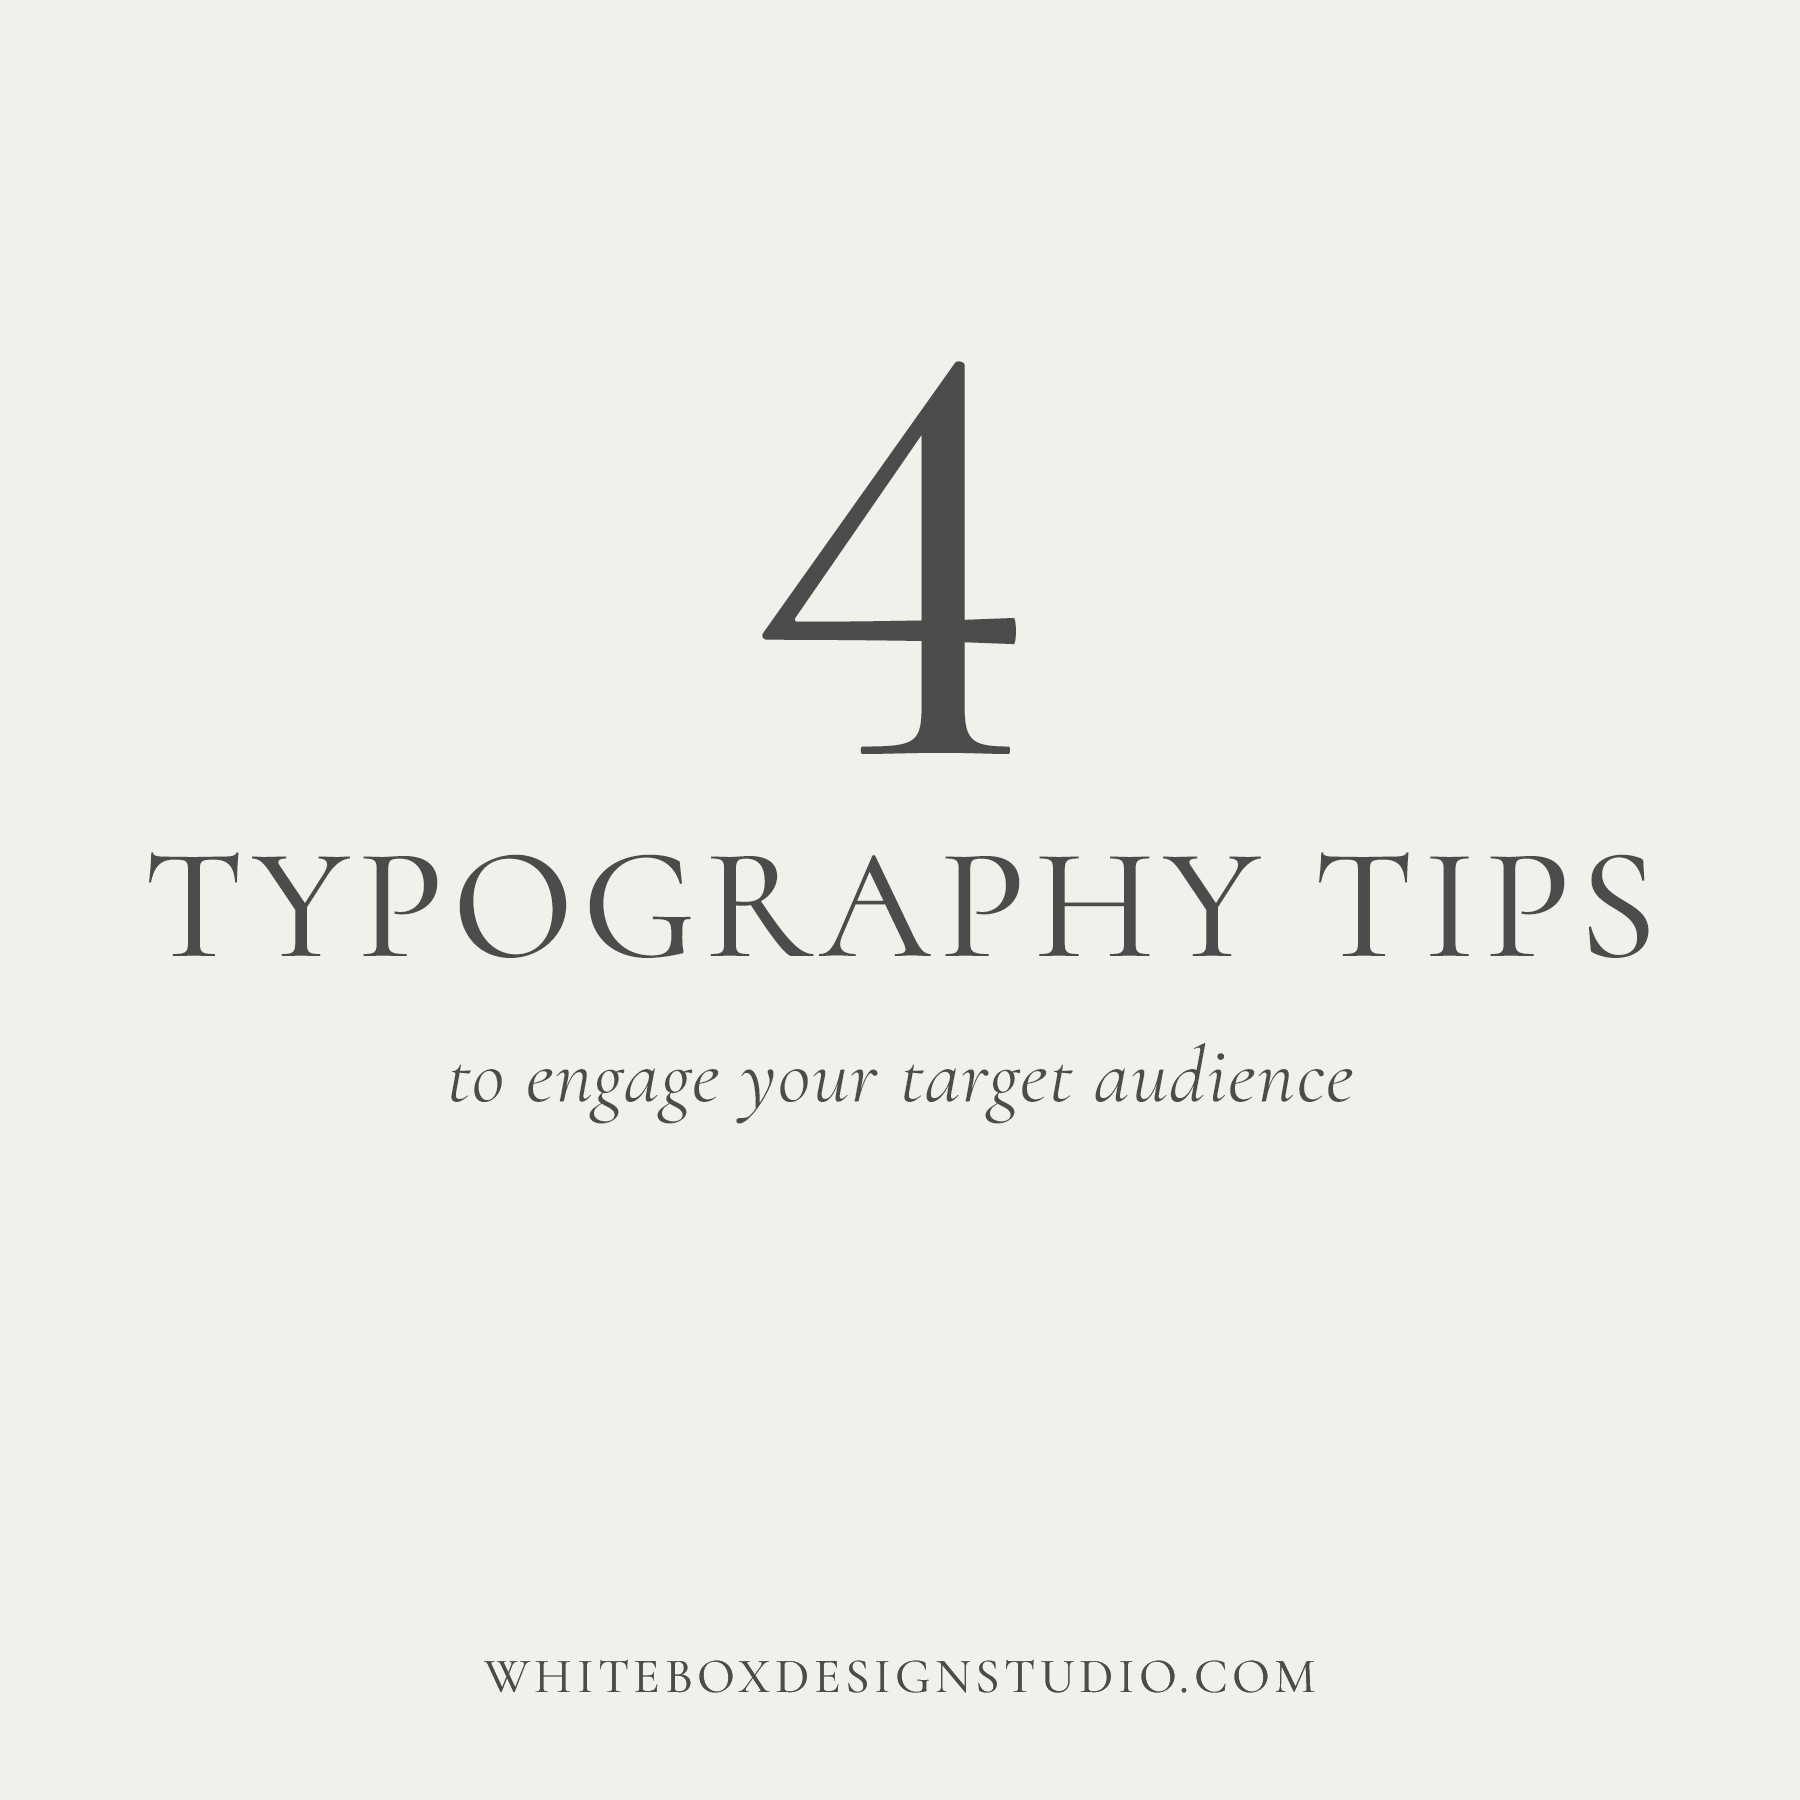 4 Typography tips to engage your target audience | www.whiteboxdesignstudio.com